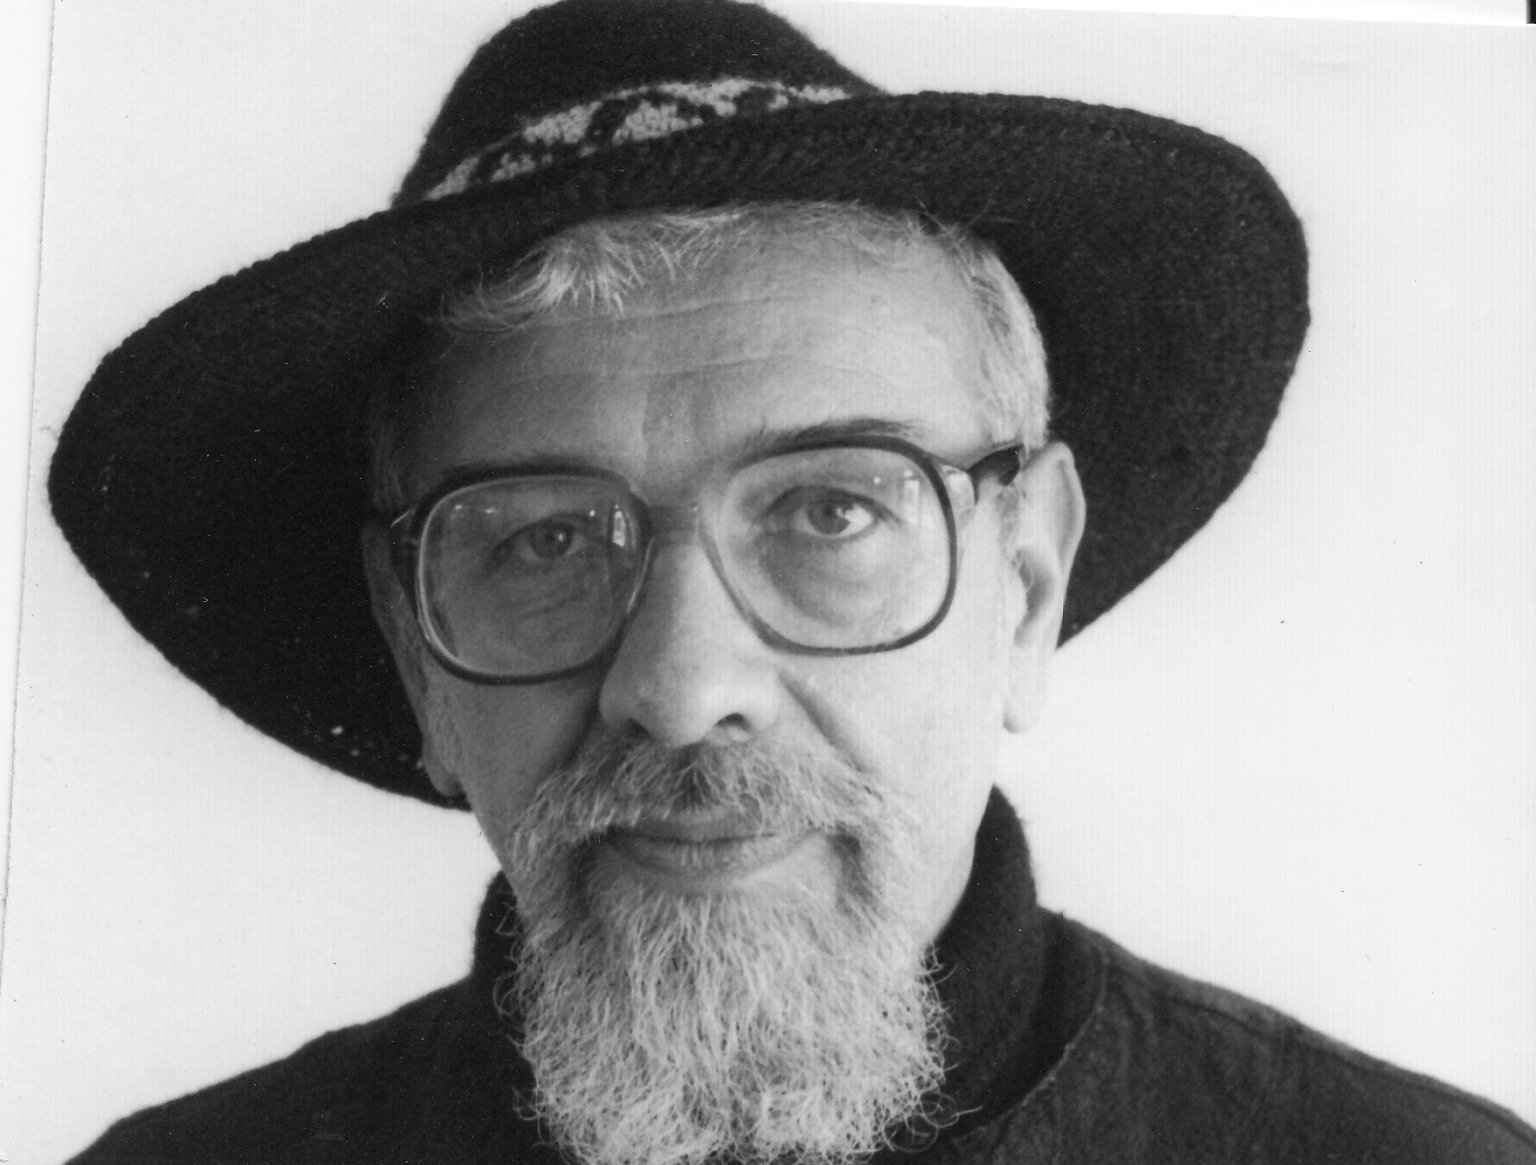 Rabbi Zalman Schachter-Shalomi in wide-brimmed hat, mid to late 1980s.